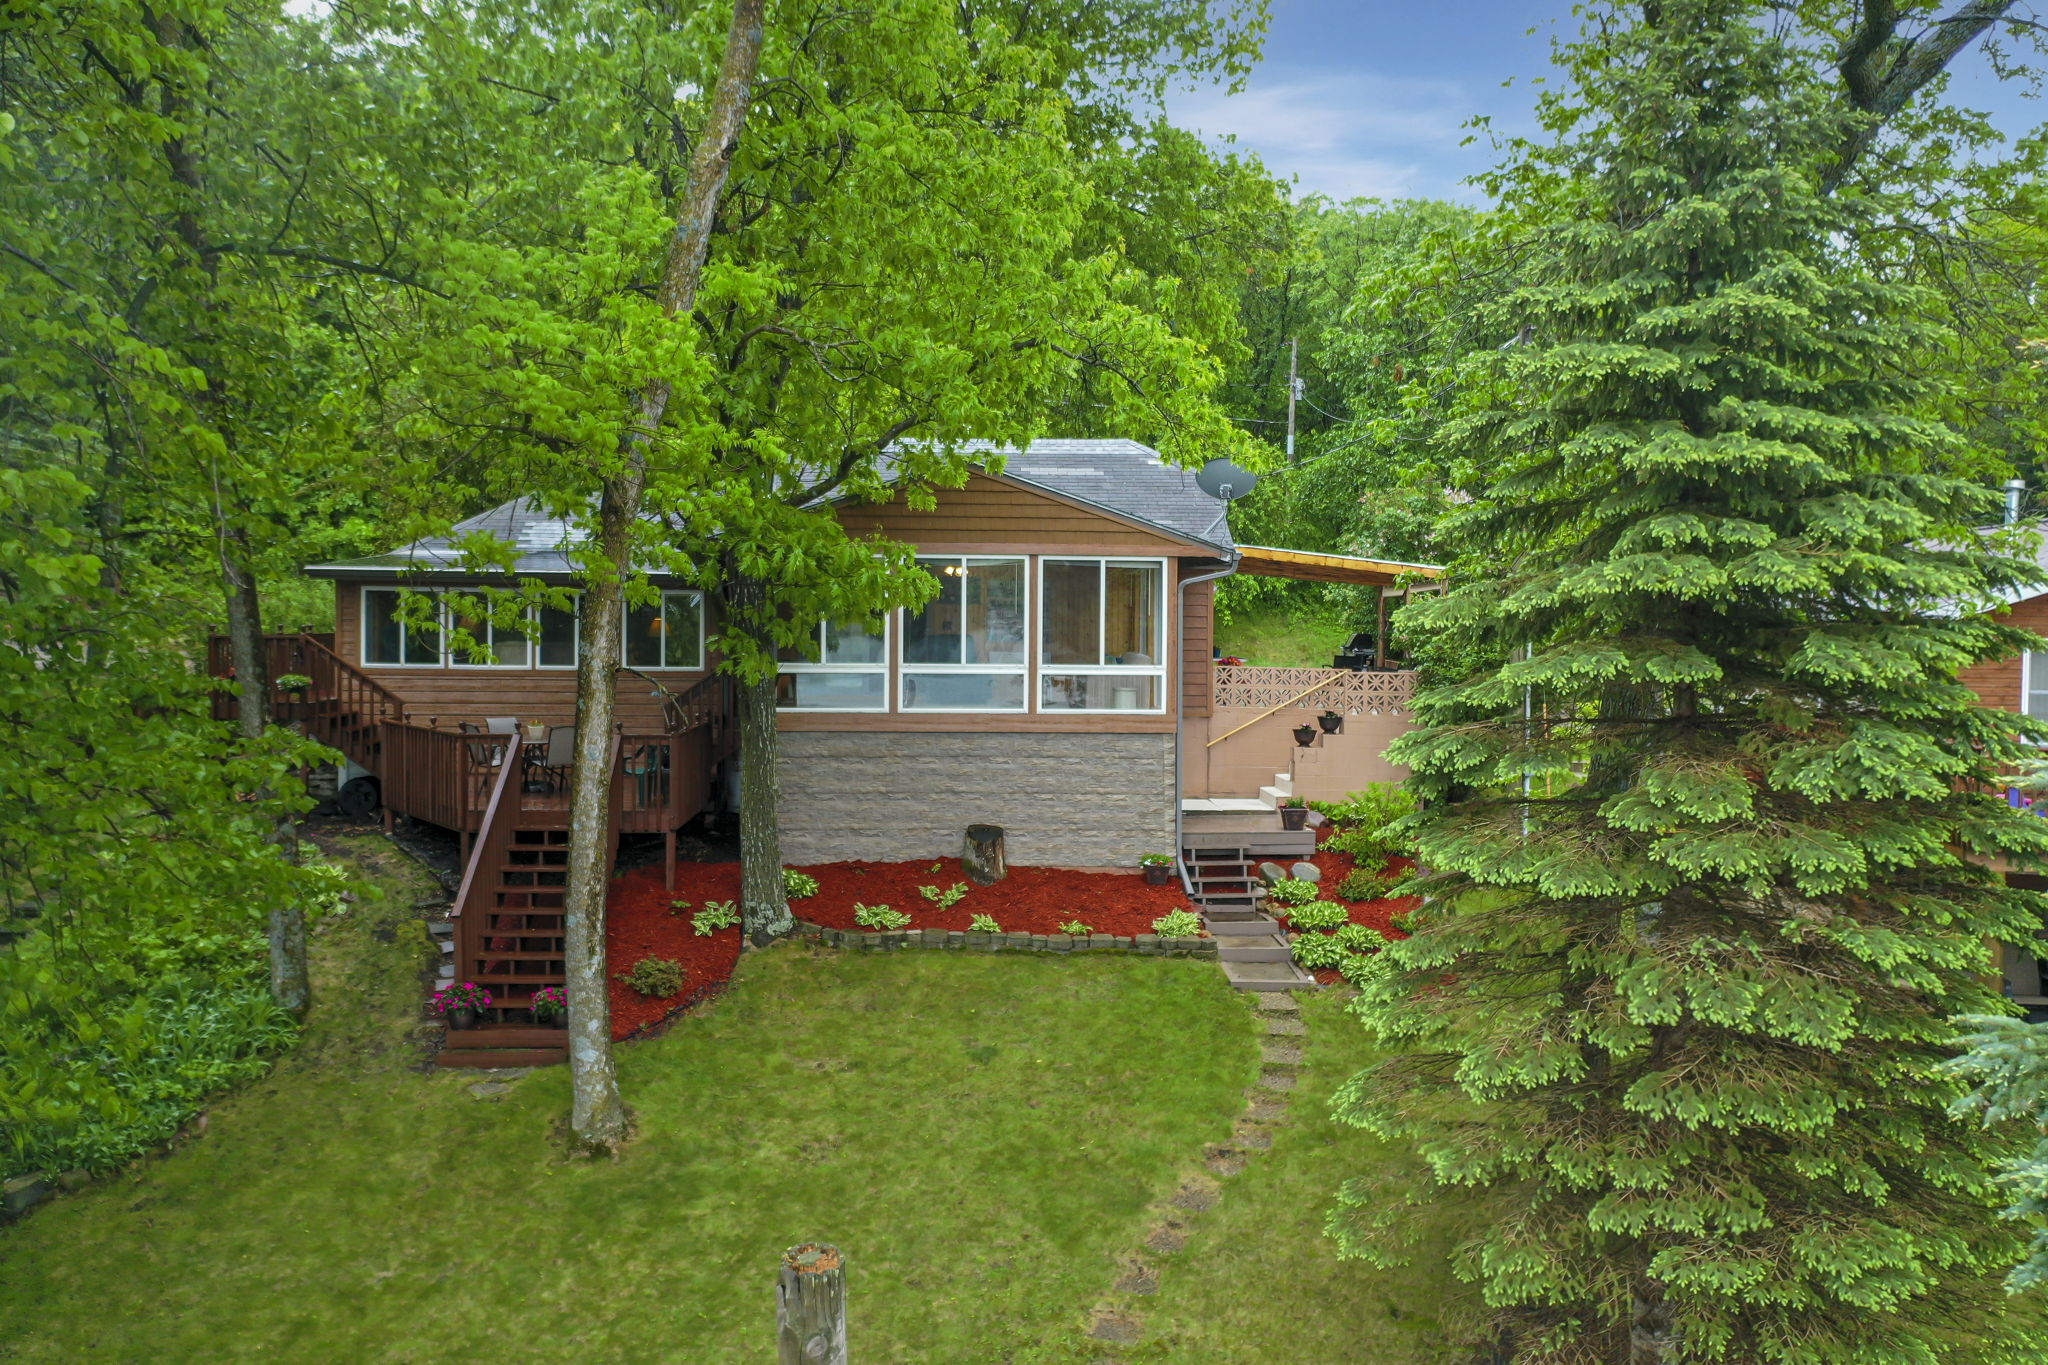 30522 Brentwood Rd, Paynesville, MN 56362, US Photo 51